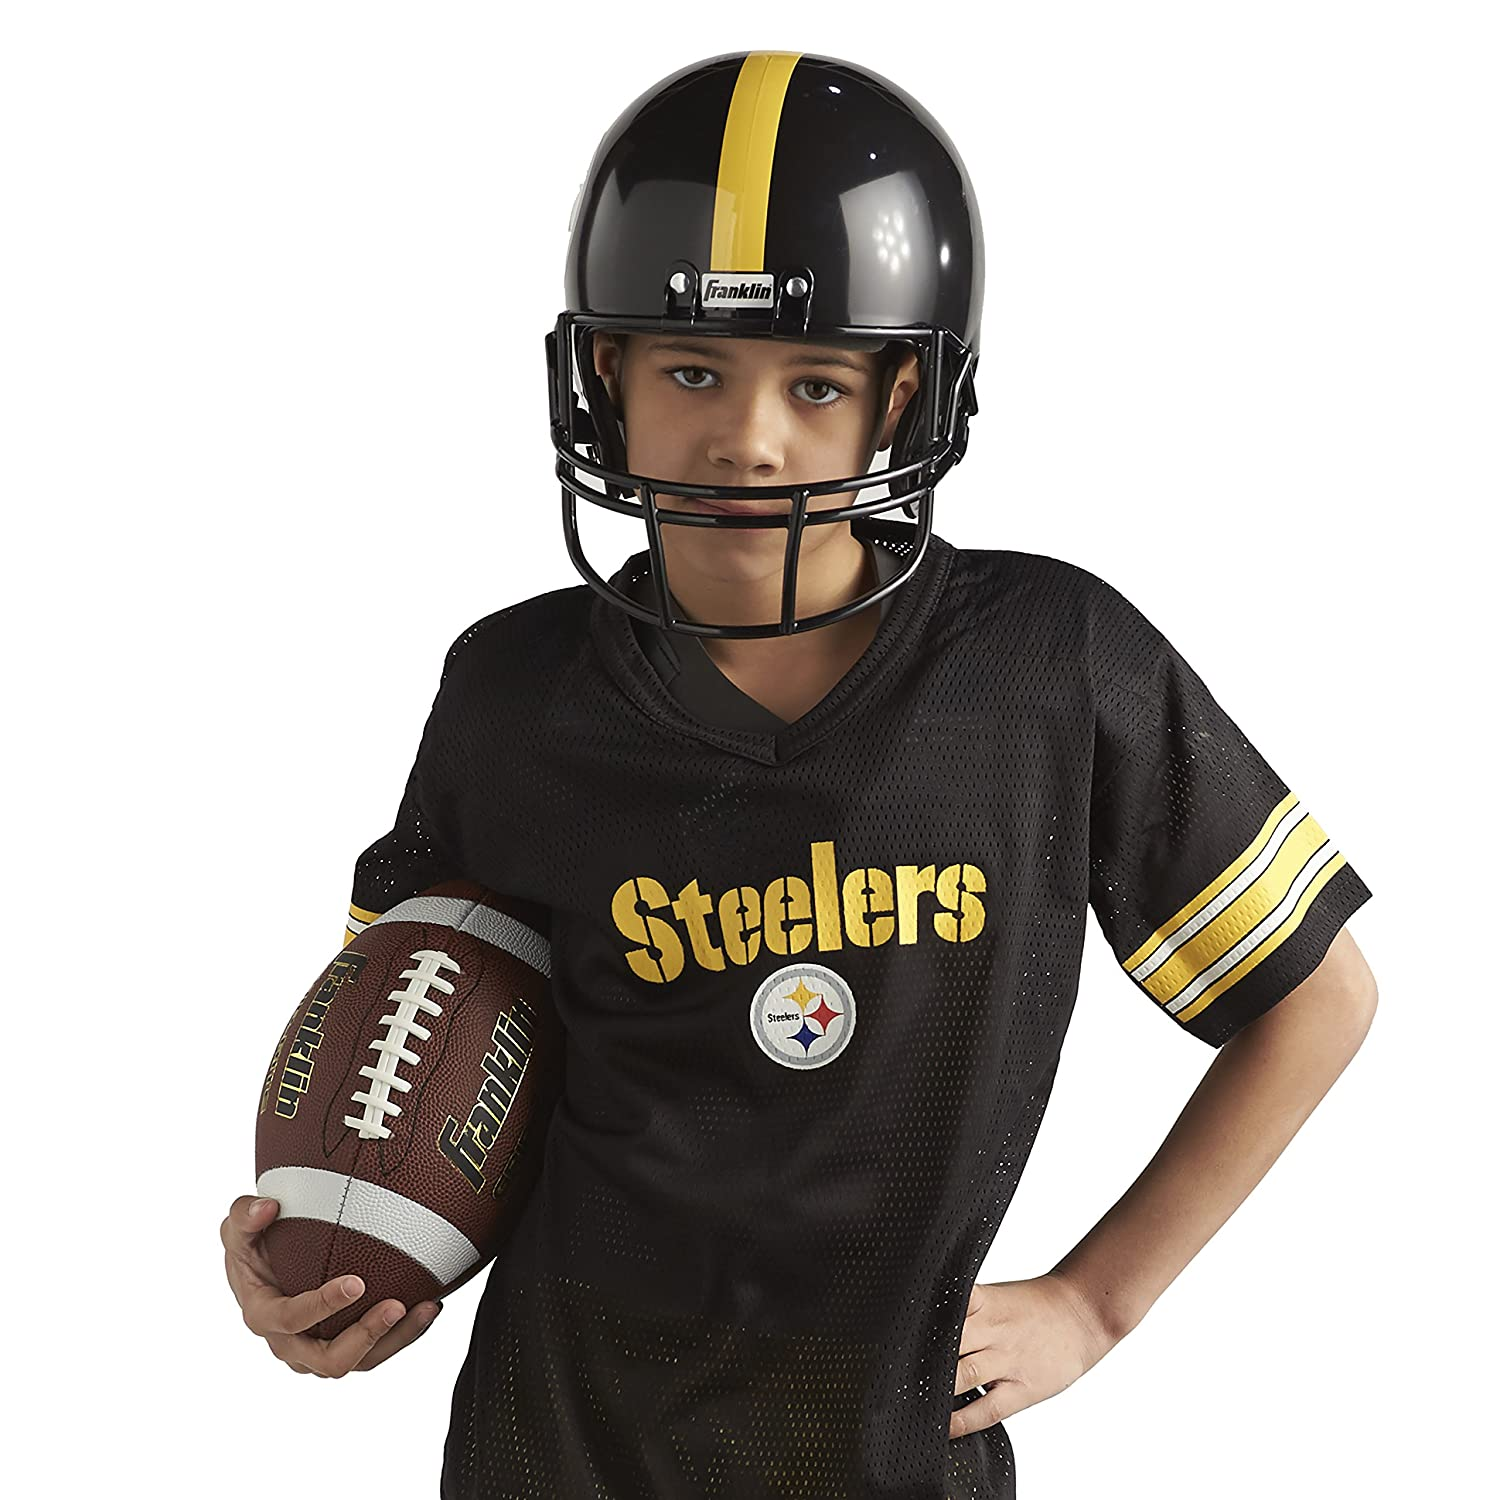 Pants NFL Kids Helmet Football Costume for Boys and Girls Franklin Sports Deluxe NFL-Style Youth Uniform Jersey Chinstrap and Iron on Numbers Included